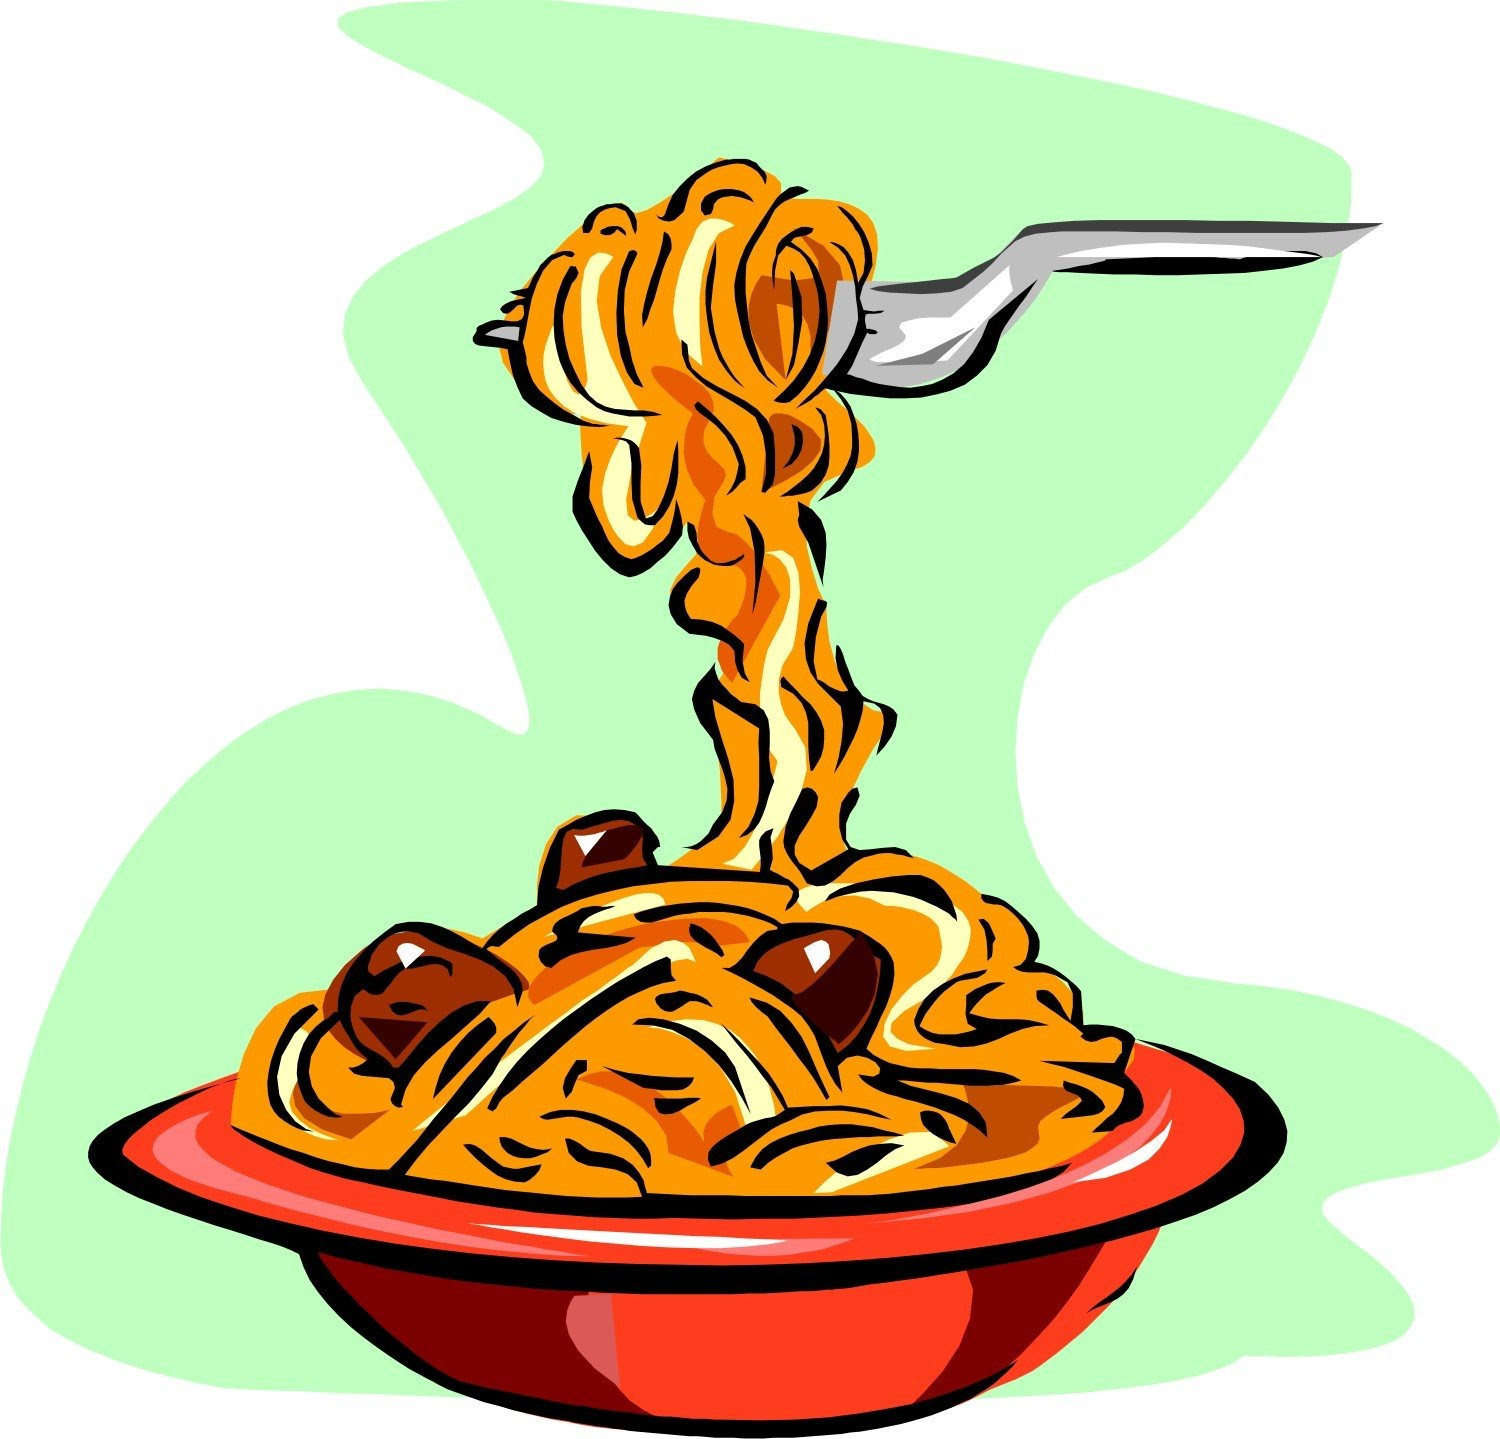 Pasta clipart 6 » Clipart Station.